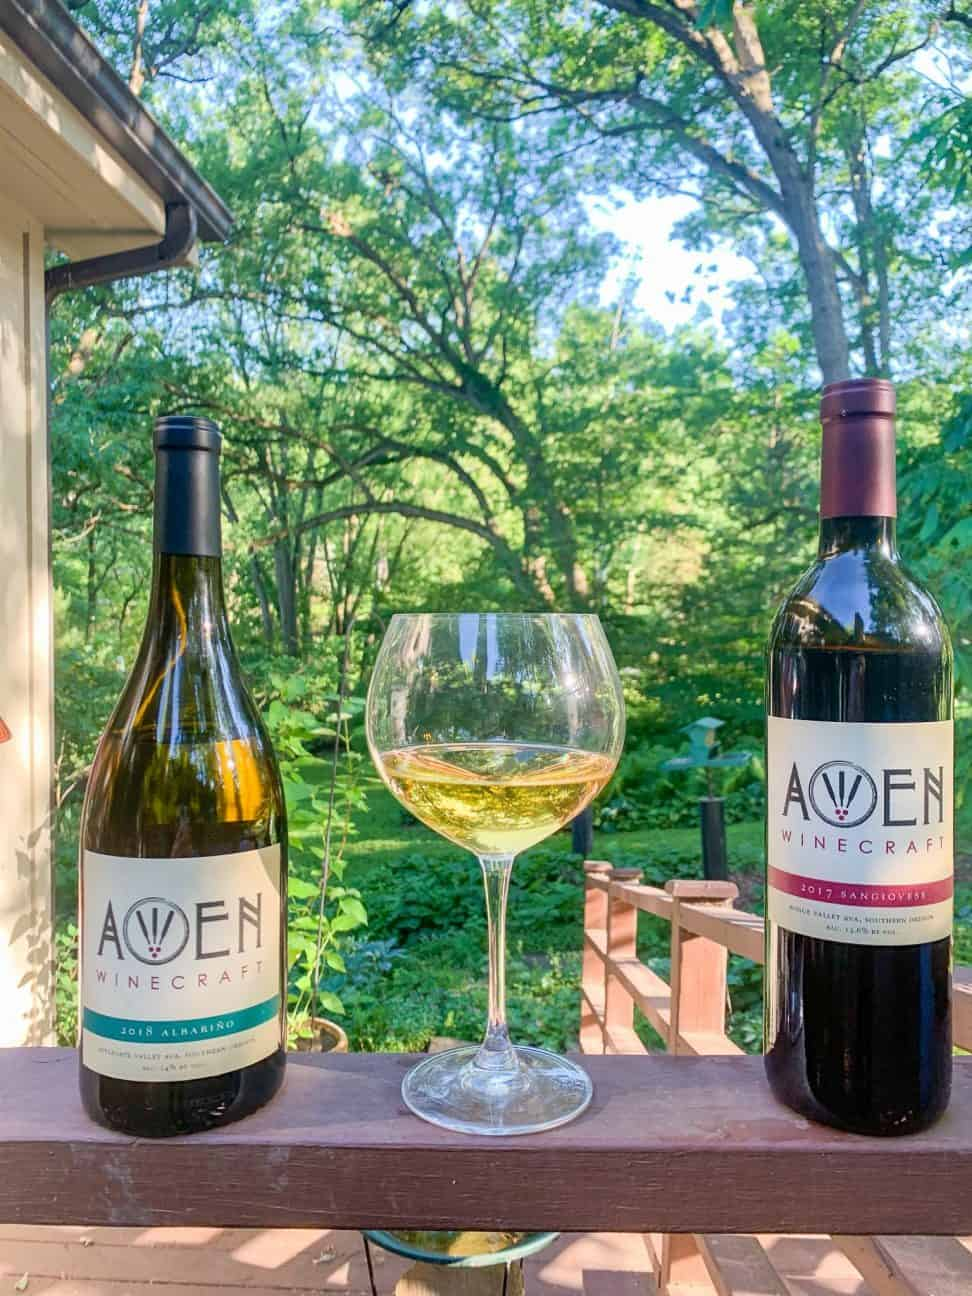 An Introduction to Rogue Valley Wines with Awen Winecraft